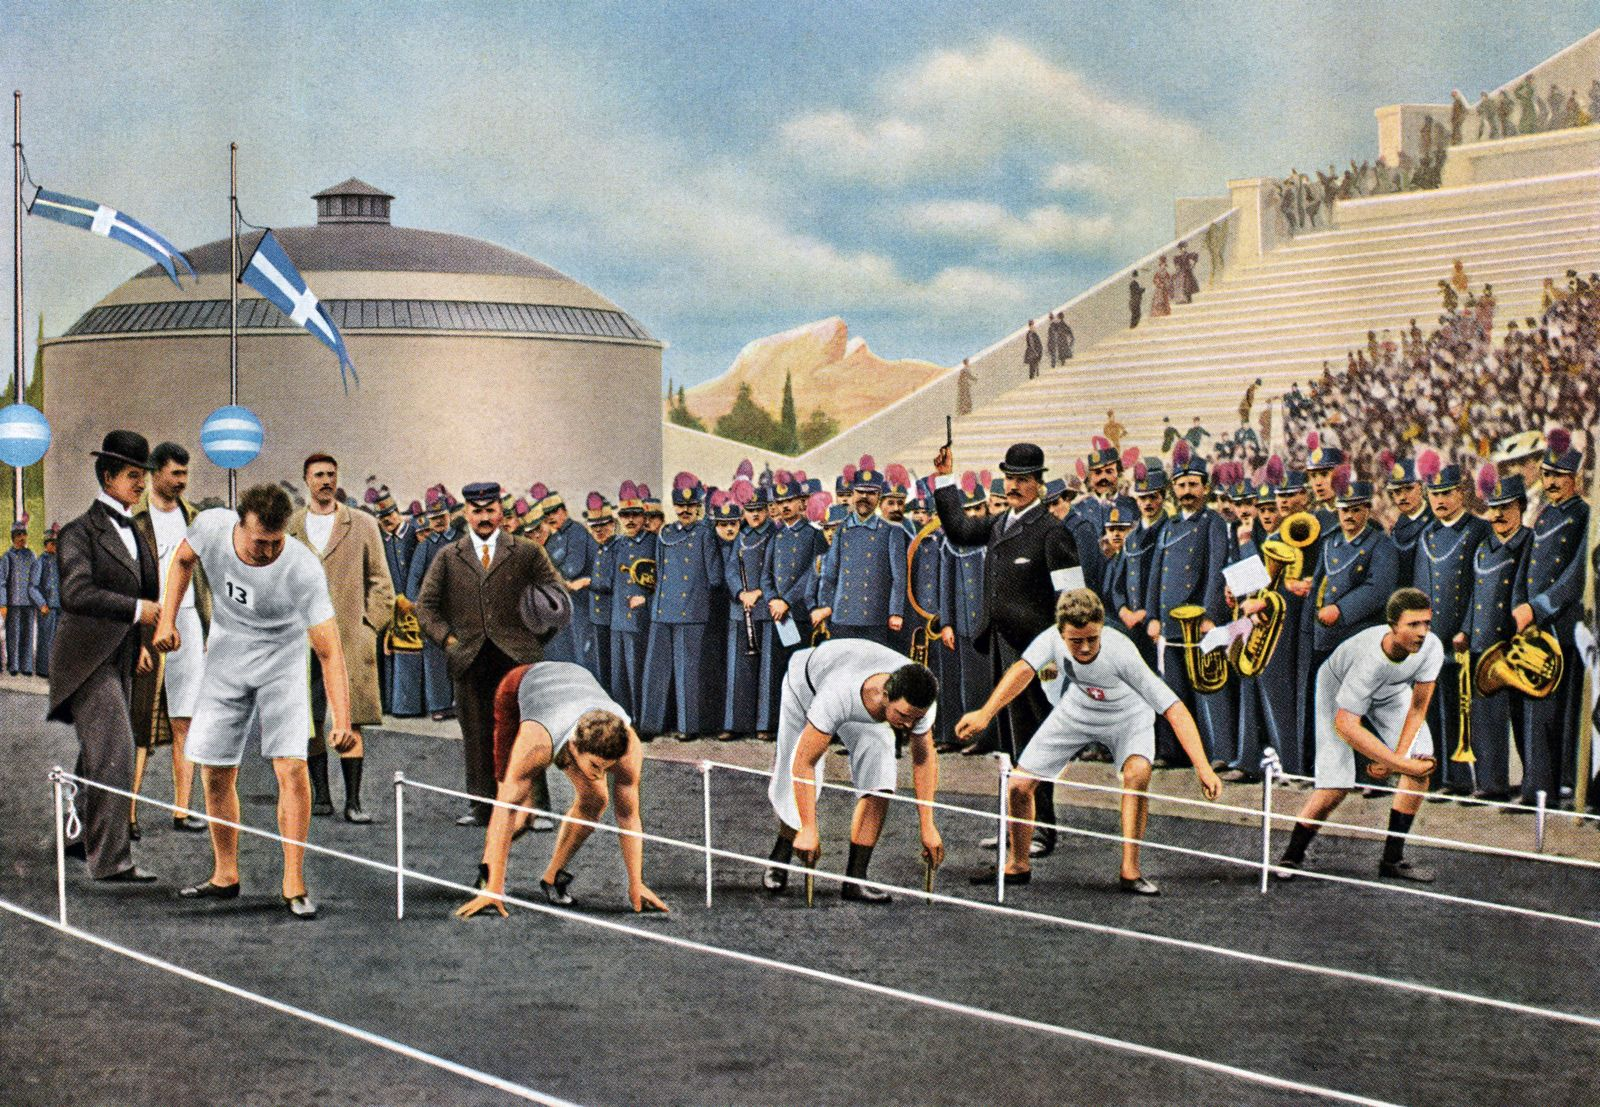 Athens 1896, the start of the 100m - American Burke (second from left) was the winner. The competitors all had their ow